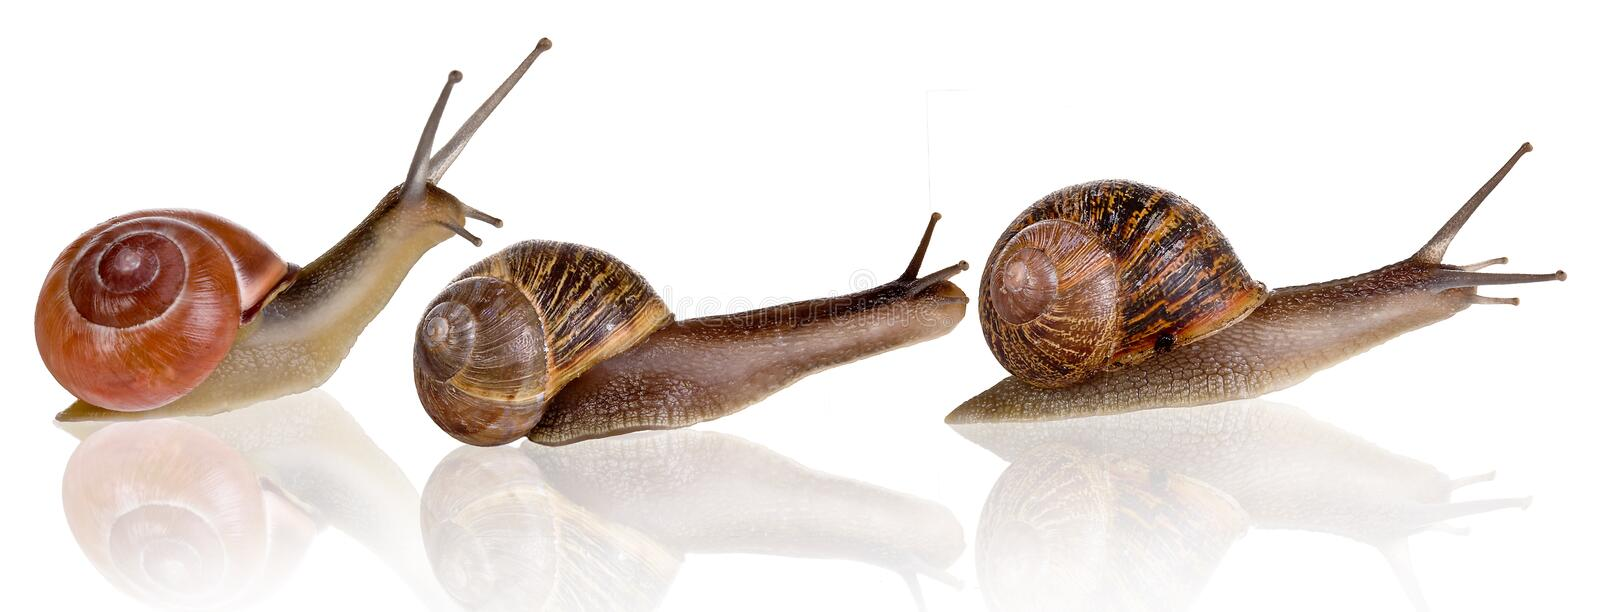 Download Three snails stock image. Image of slugs, isolated, grapevine - 10552951